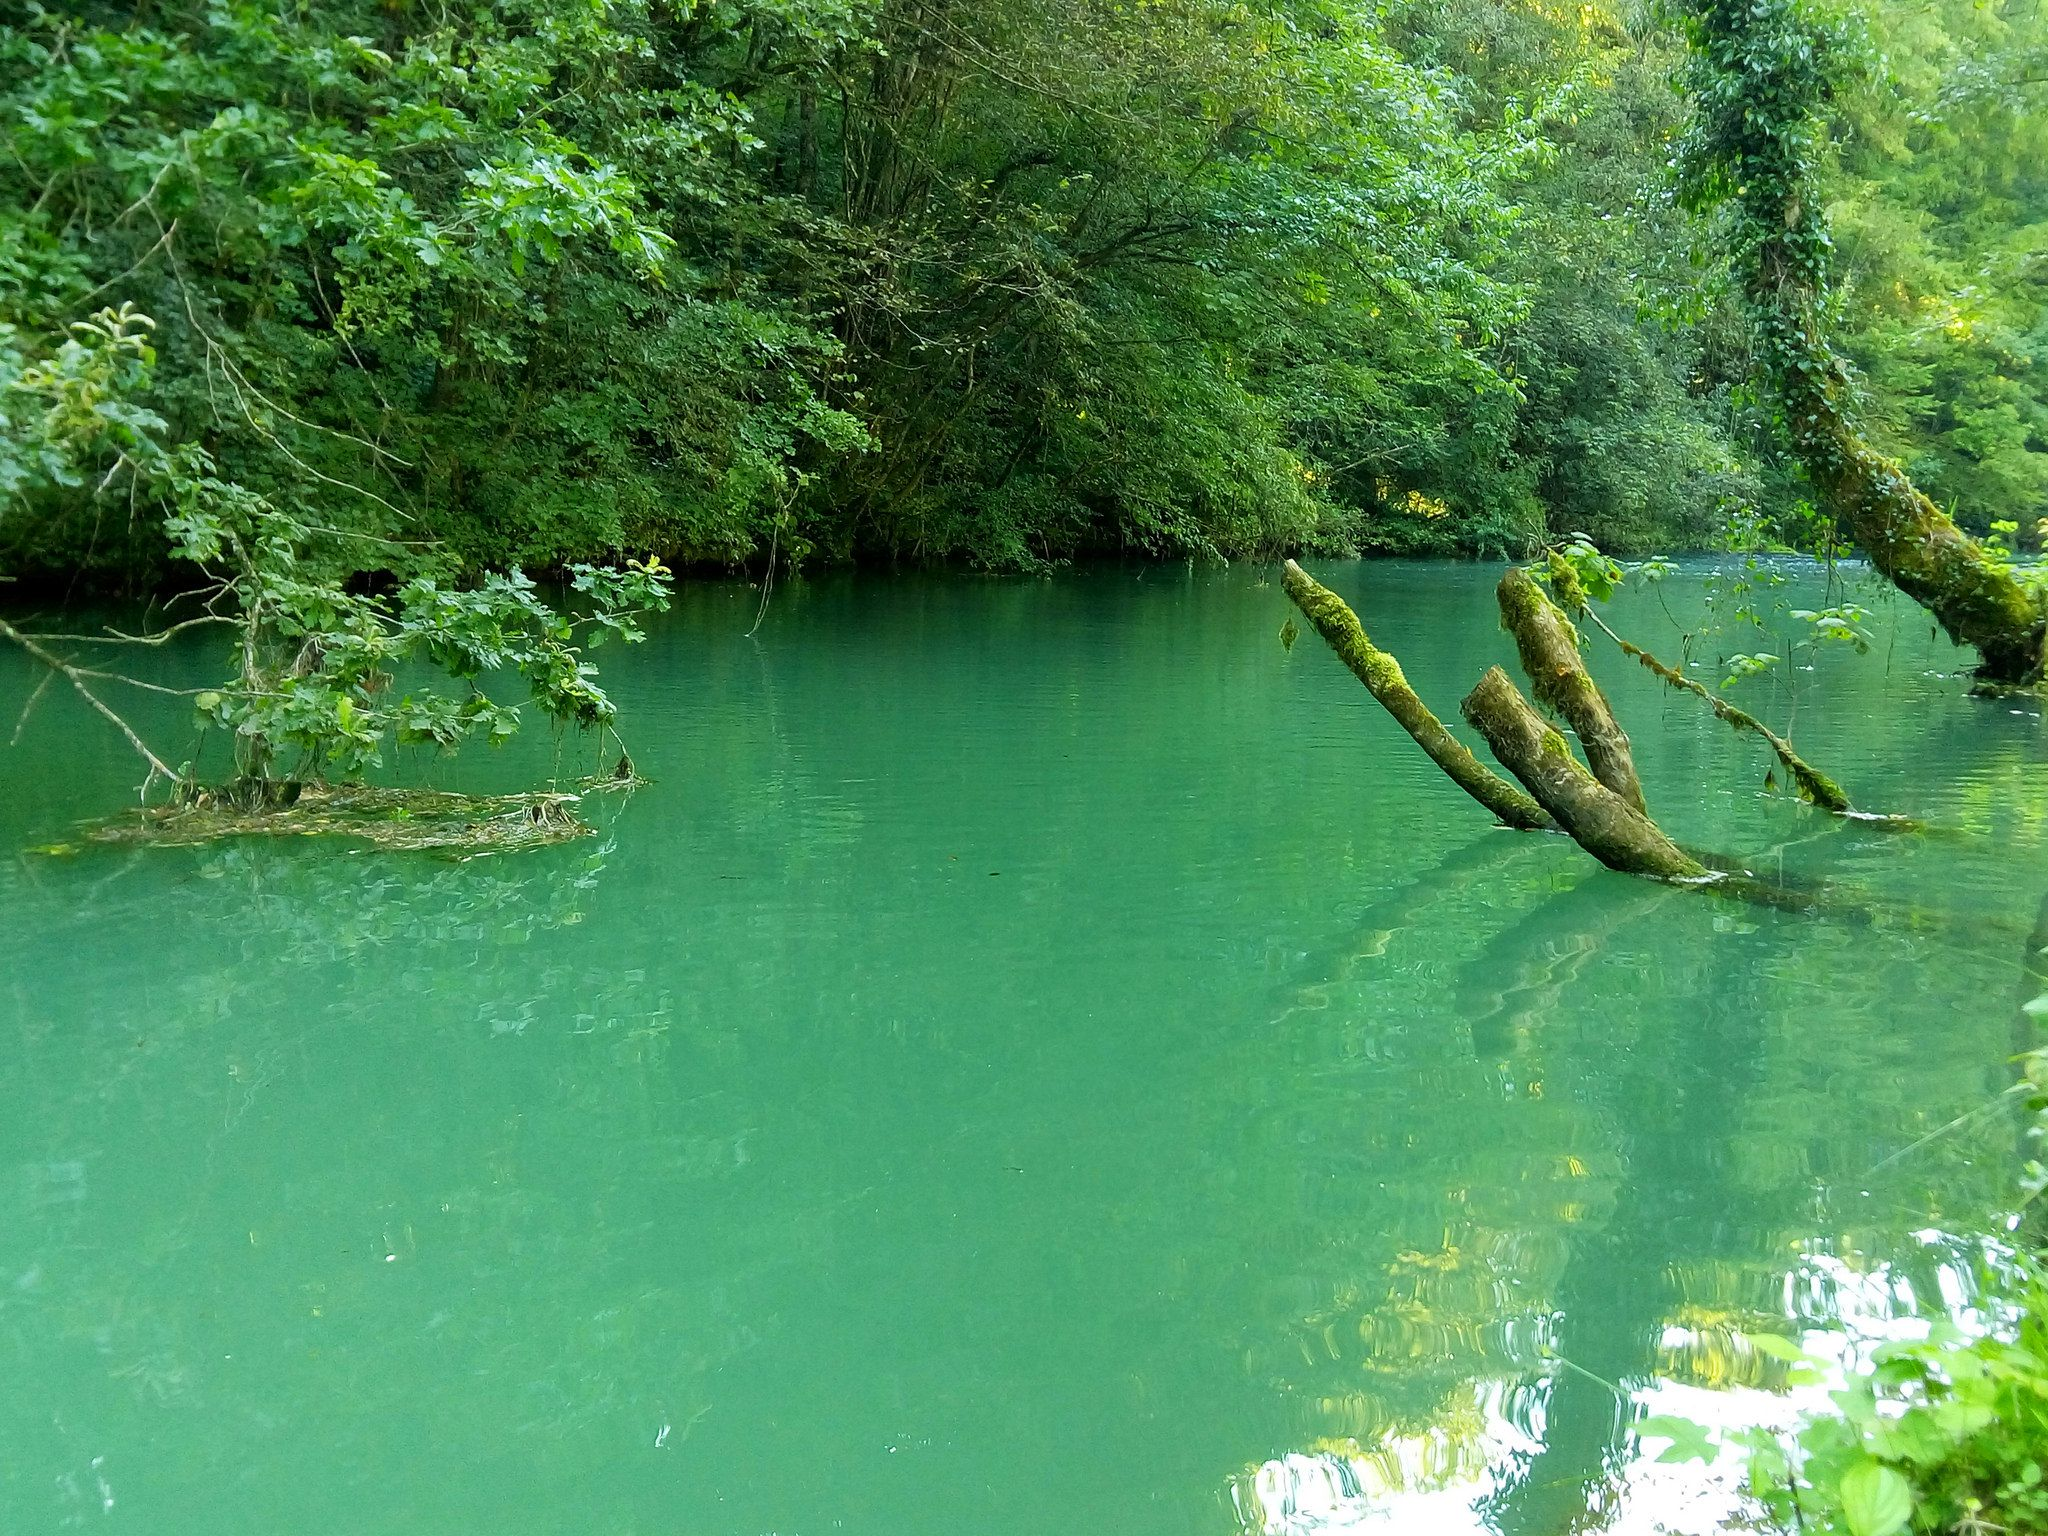 Kolpa river green water